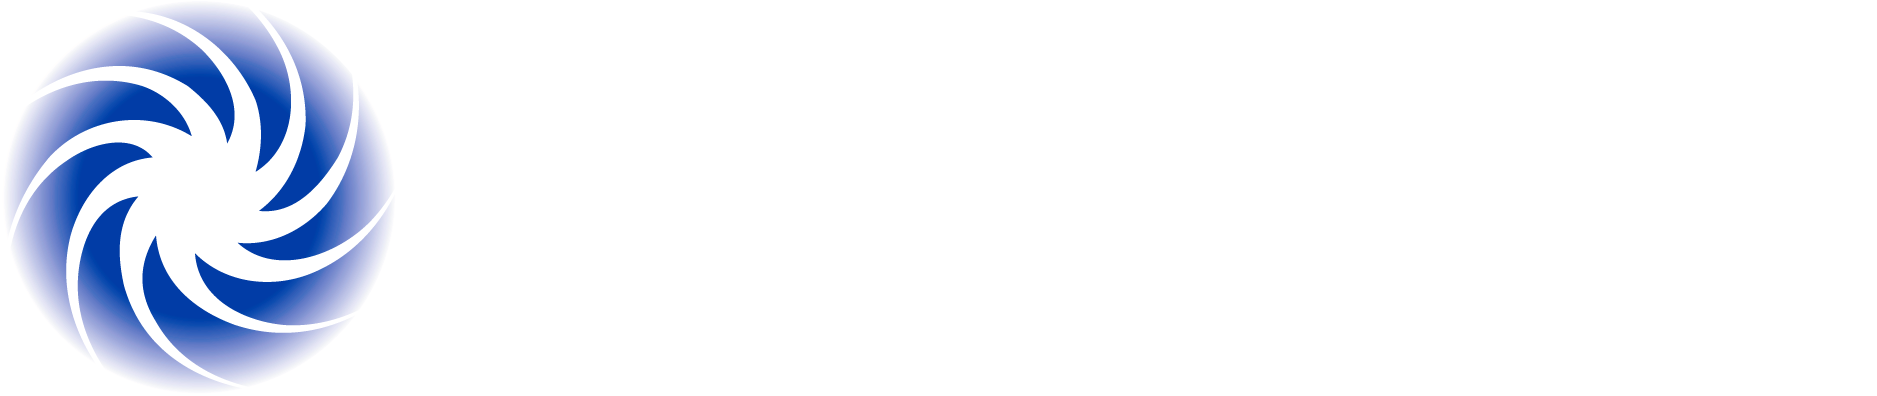 tectonica_ILLUSTRATOR [Converted].png